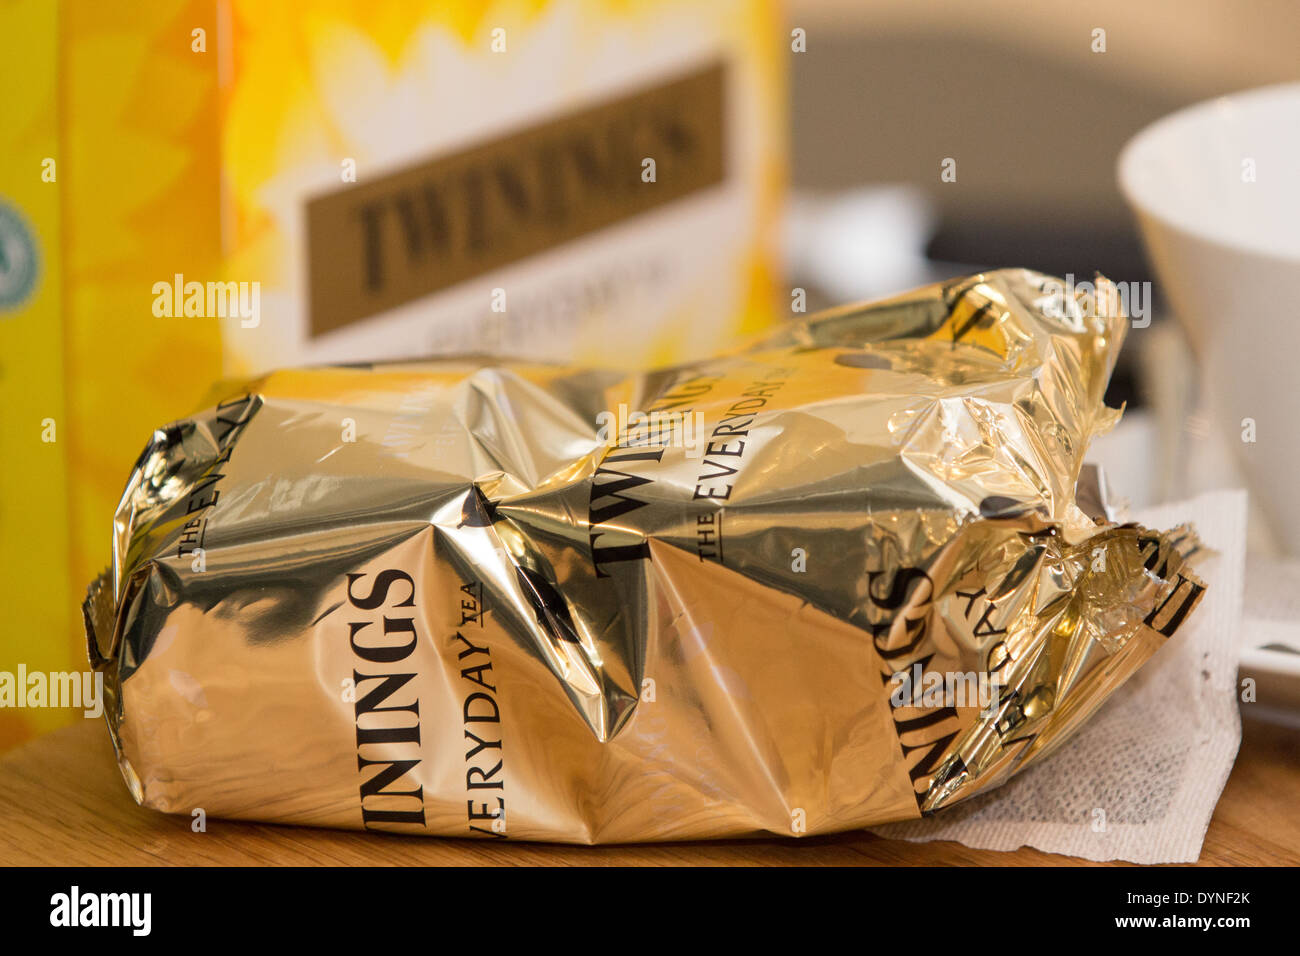 Twinings has been a major tea business since 1706. It is an international brand with more than 200 teas sold in over 100 countries throughout the world. - Stock Image